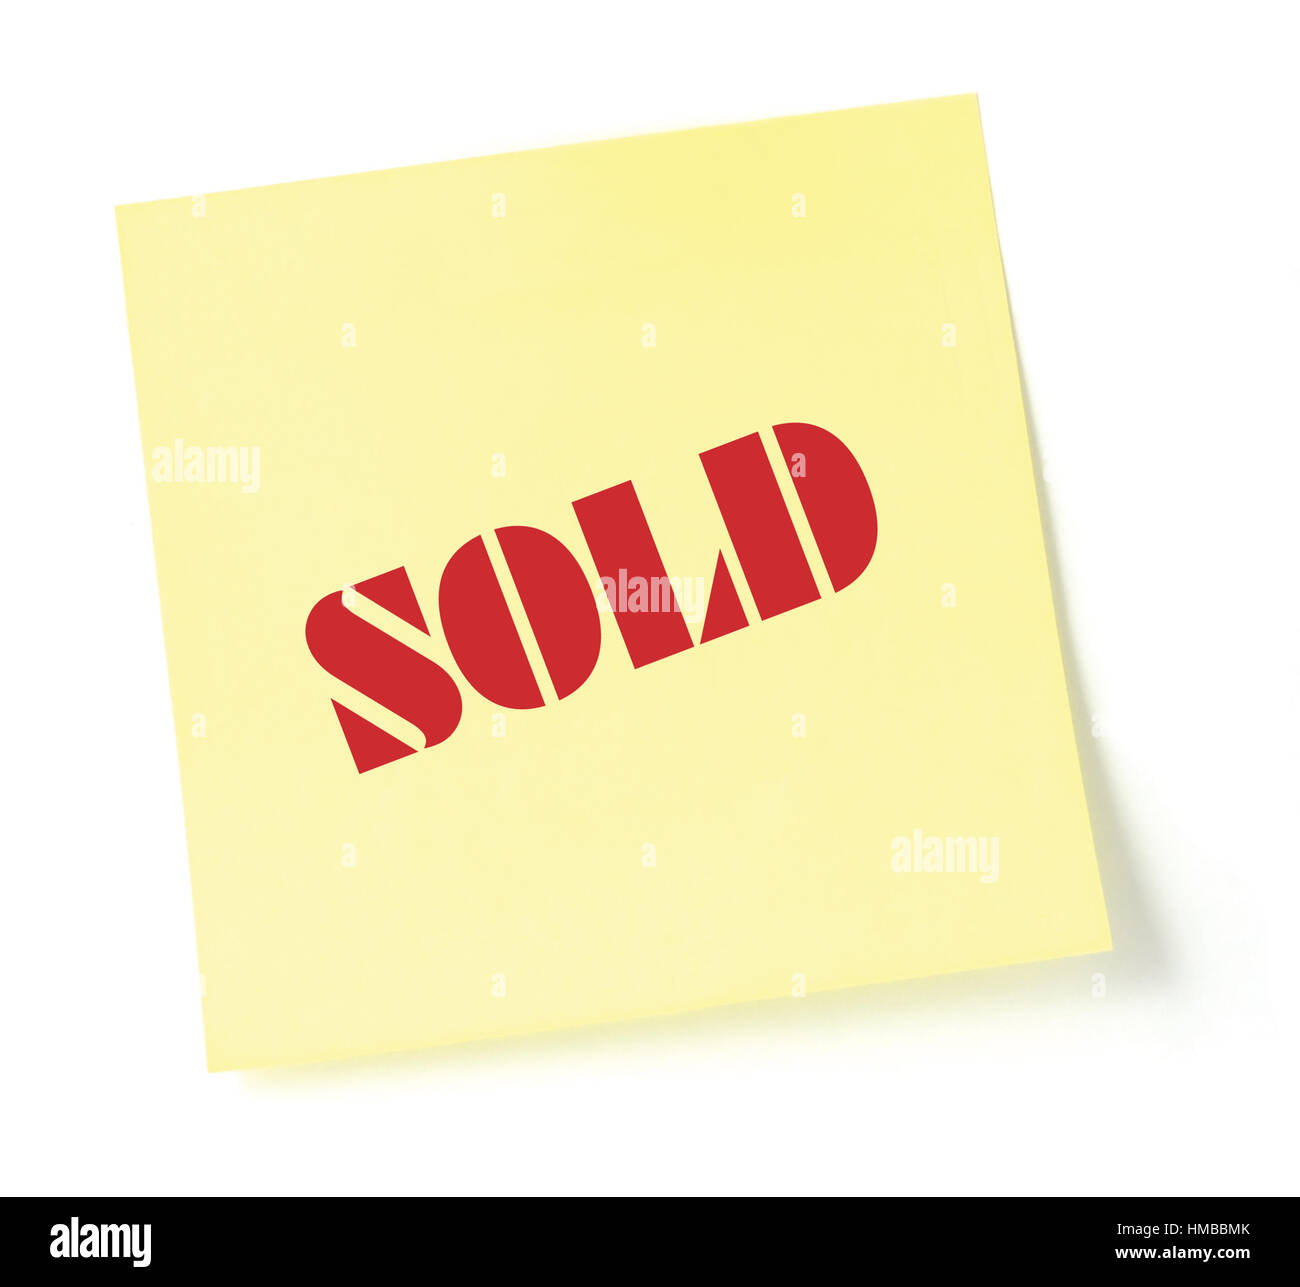 Sticky note indicating item is sold, isolated detailed macro closeup, red text on yellow sticker - Stock Image